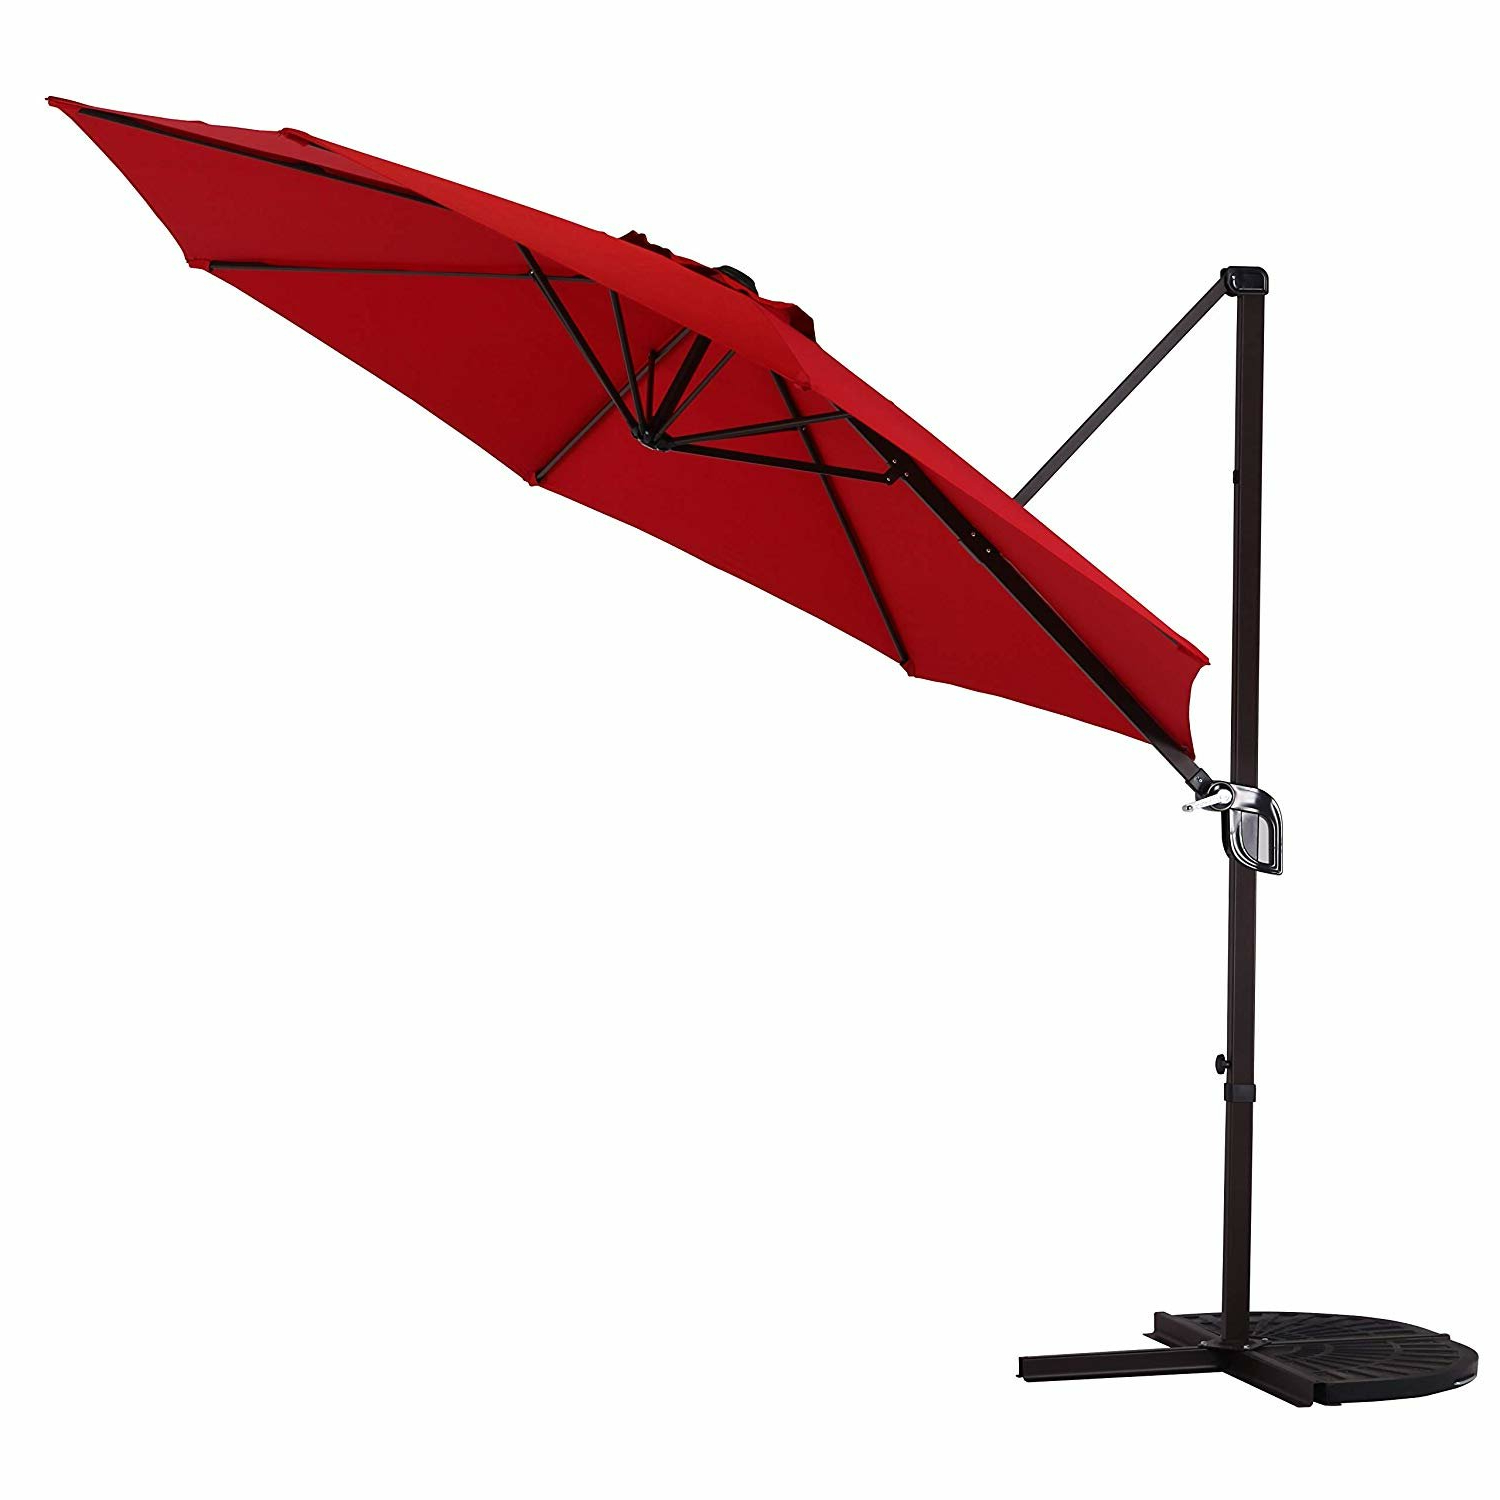 Tayla 10' Cantilever Umbrella With Most Current Tottenham Patio Hanging Offset Cantilever Umbrellas (View 7 of 20)